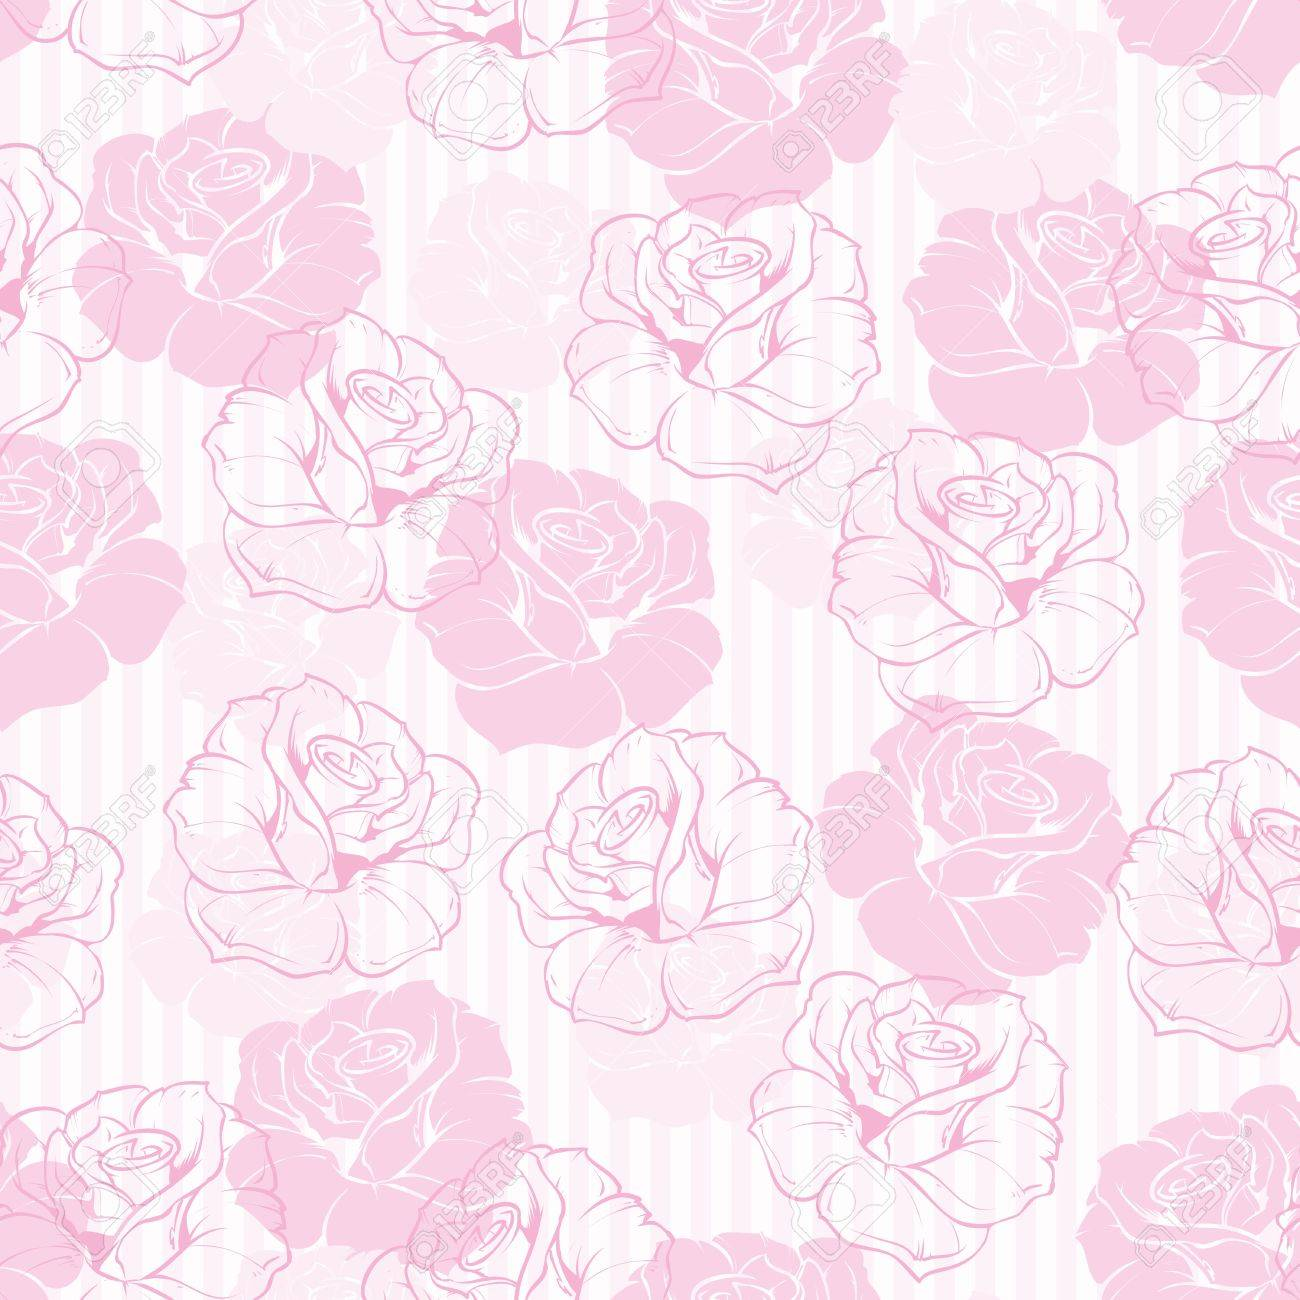 Seamless Retro Vector Floral Pattern With Elegant Pink Roses On Sweet Candy And White Stripes